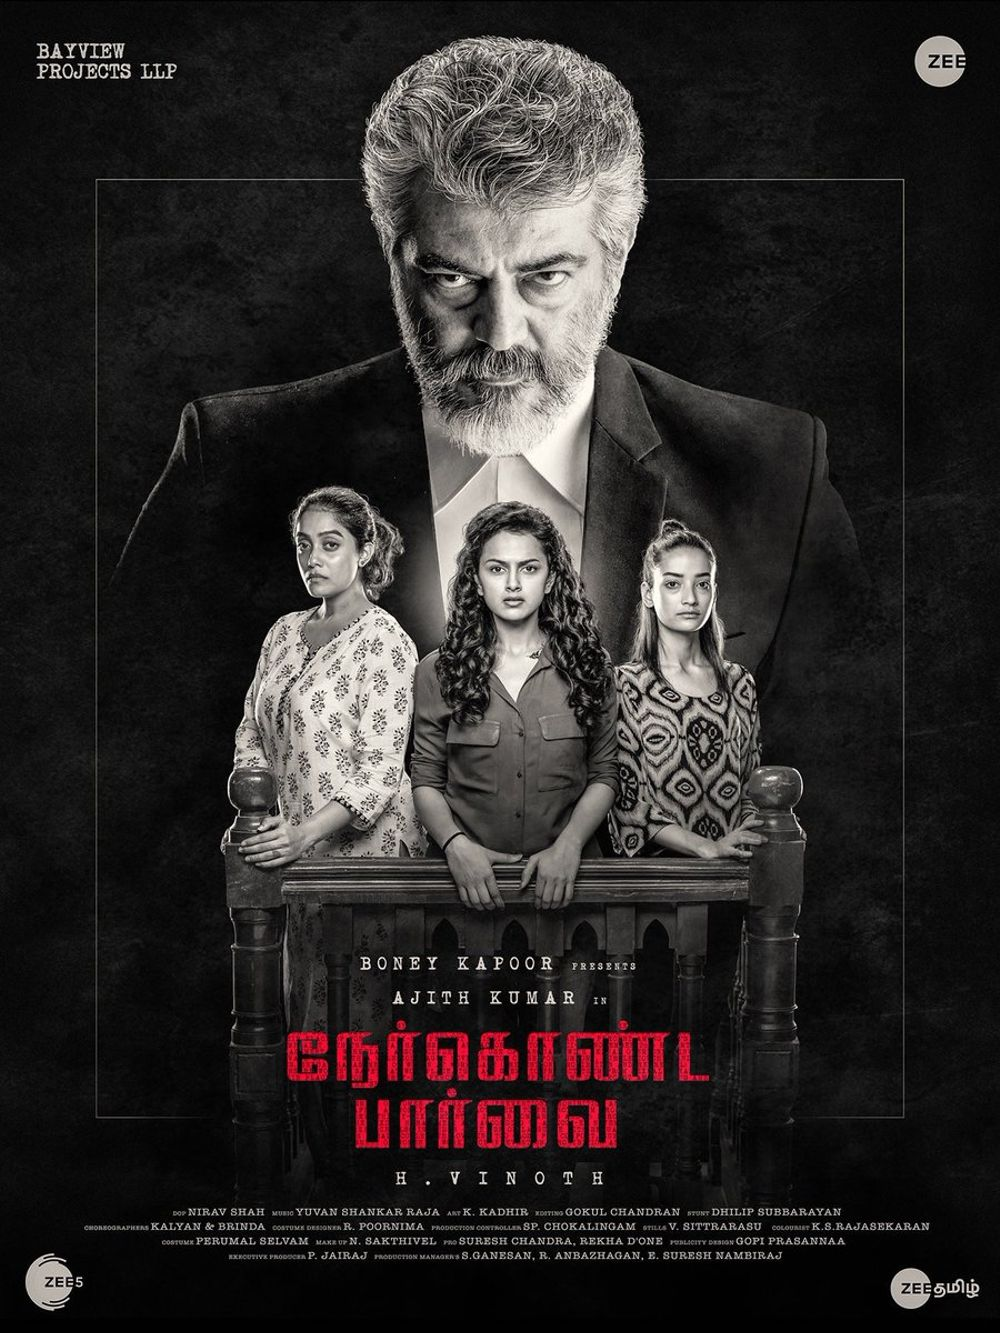 Thalapathy 63, Nerkonda Paarvai, SK 14 title or SK 15 - the guessing game begins!